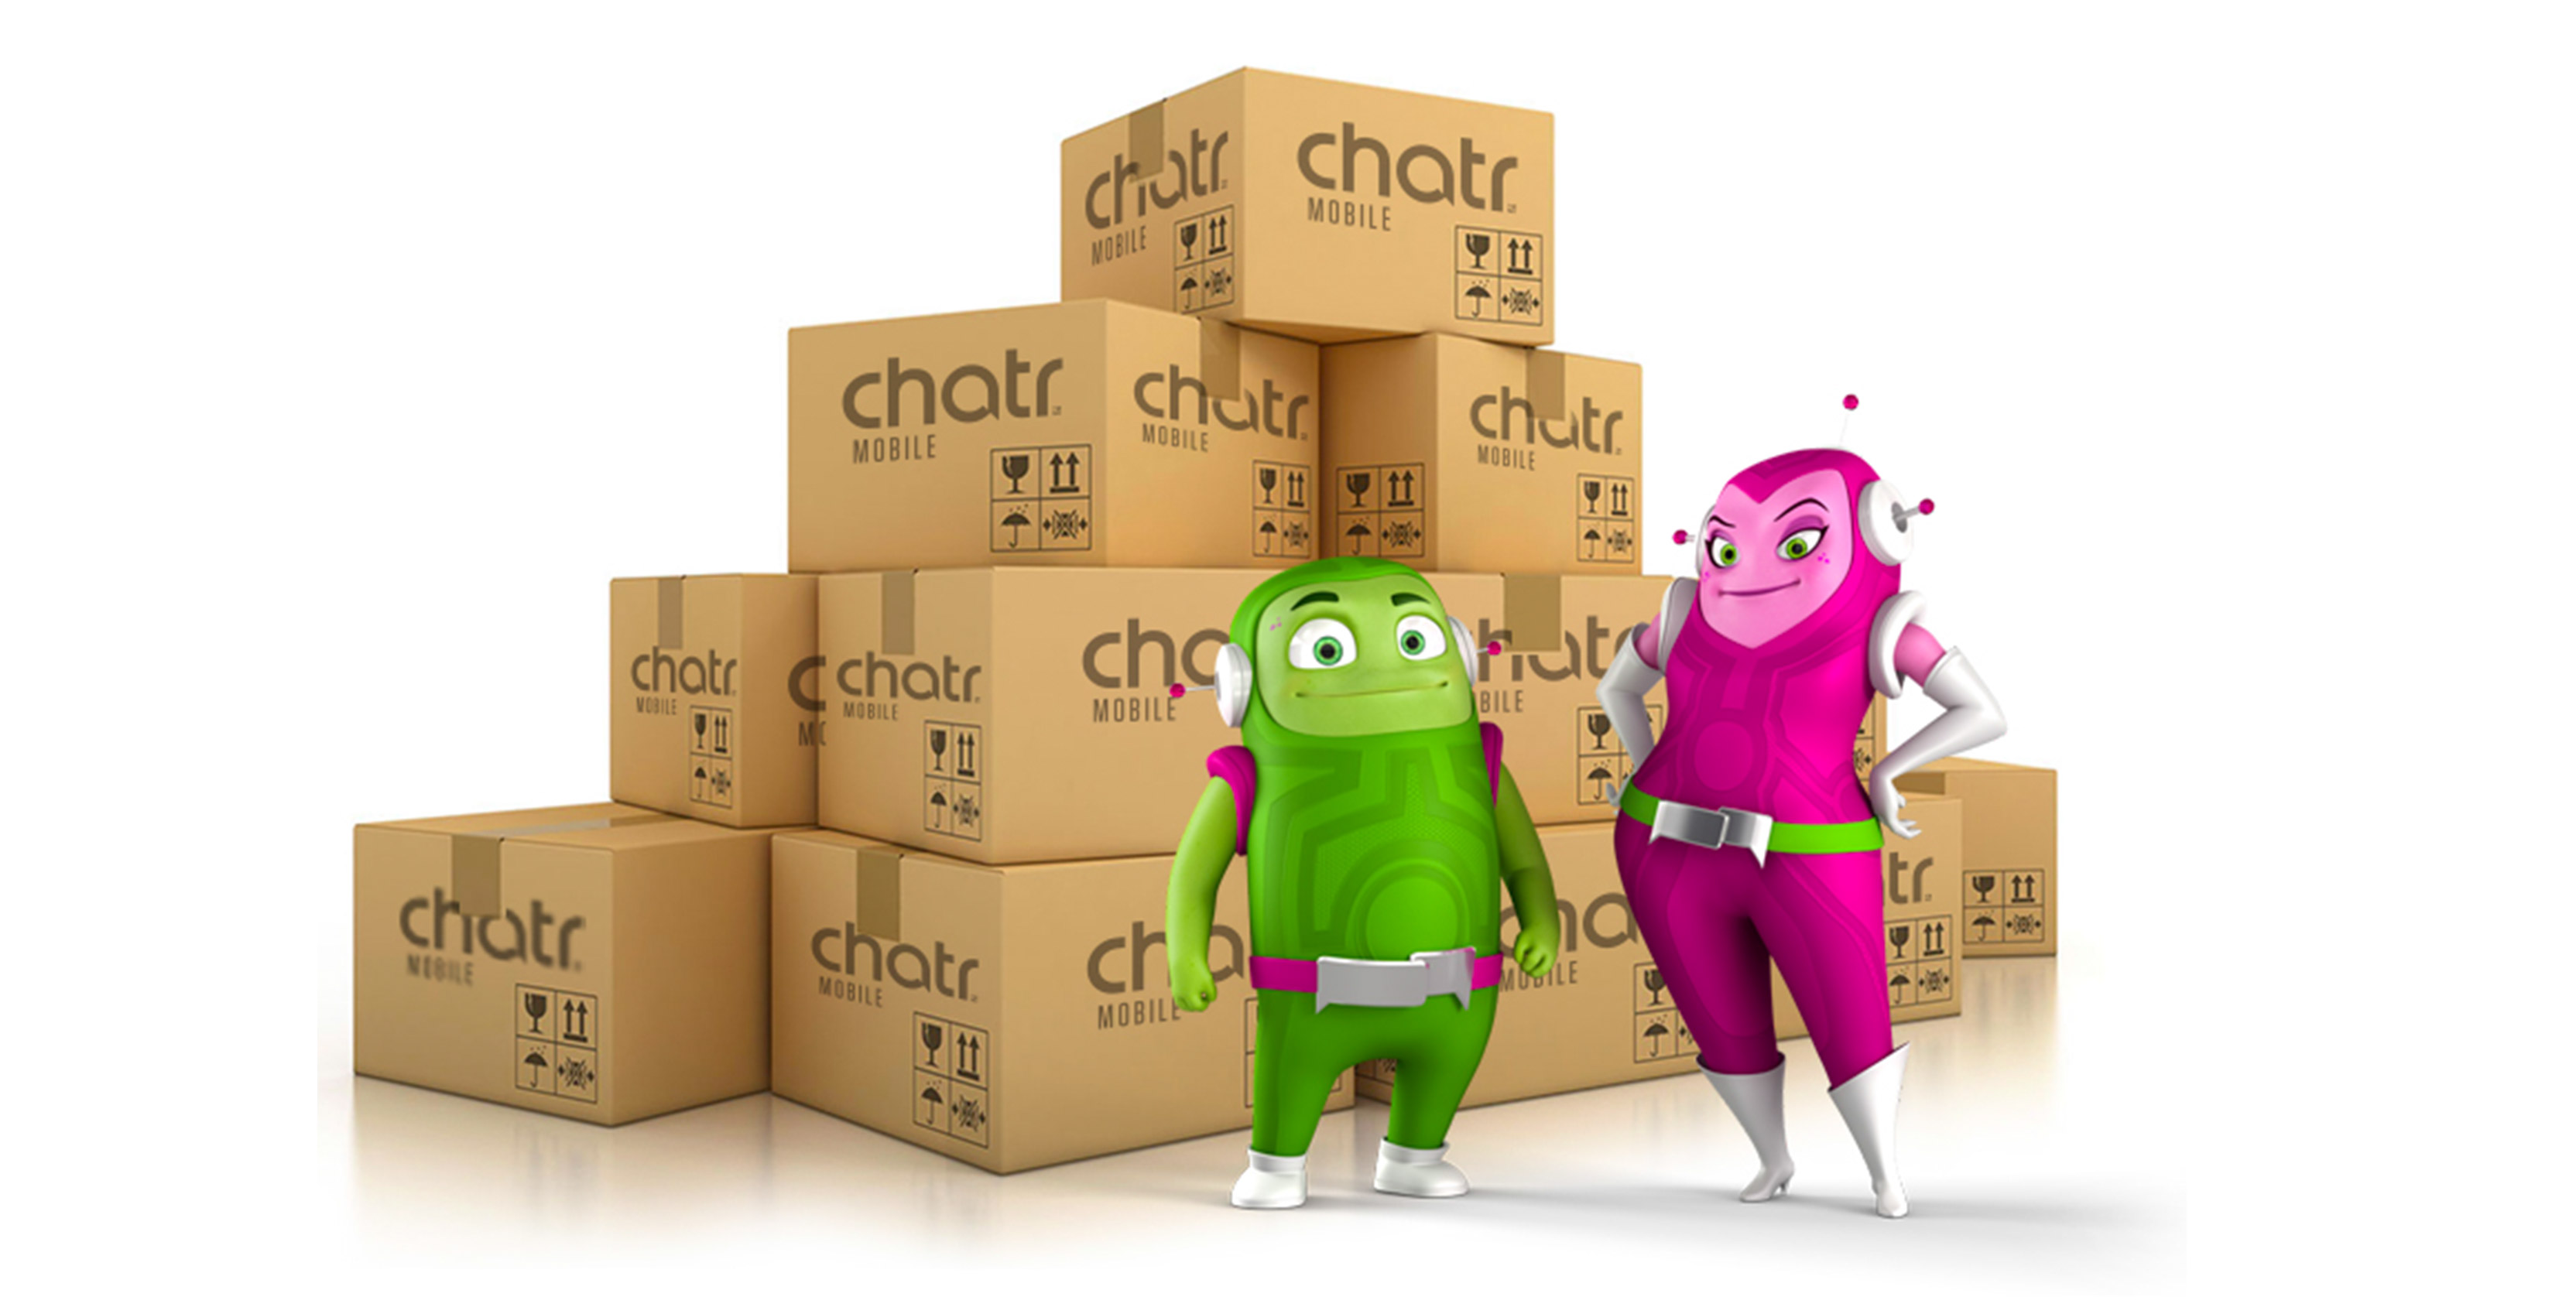 chatr mobilicity